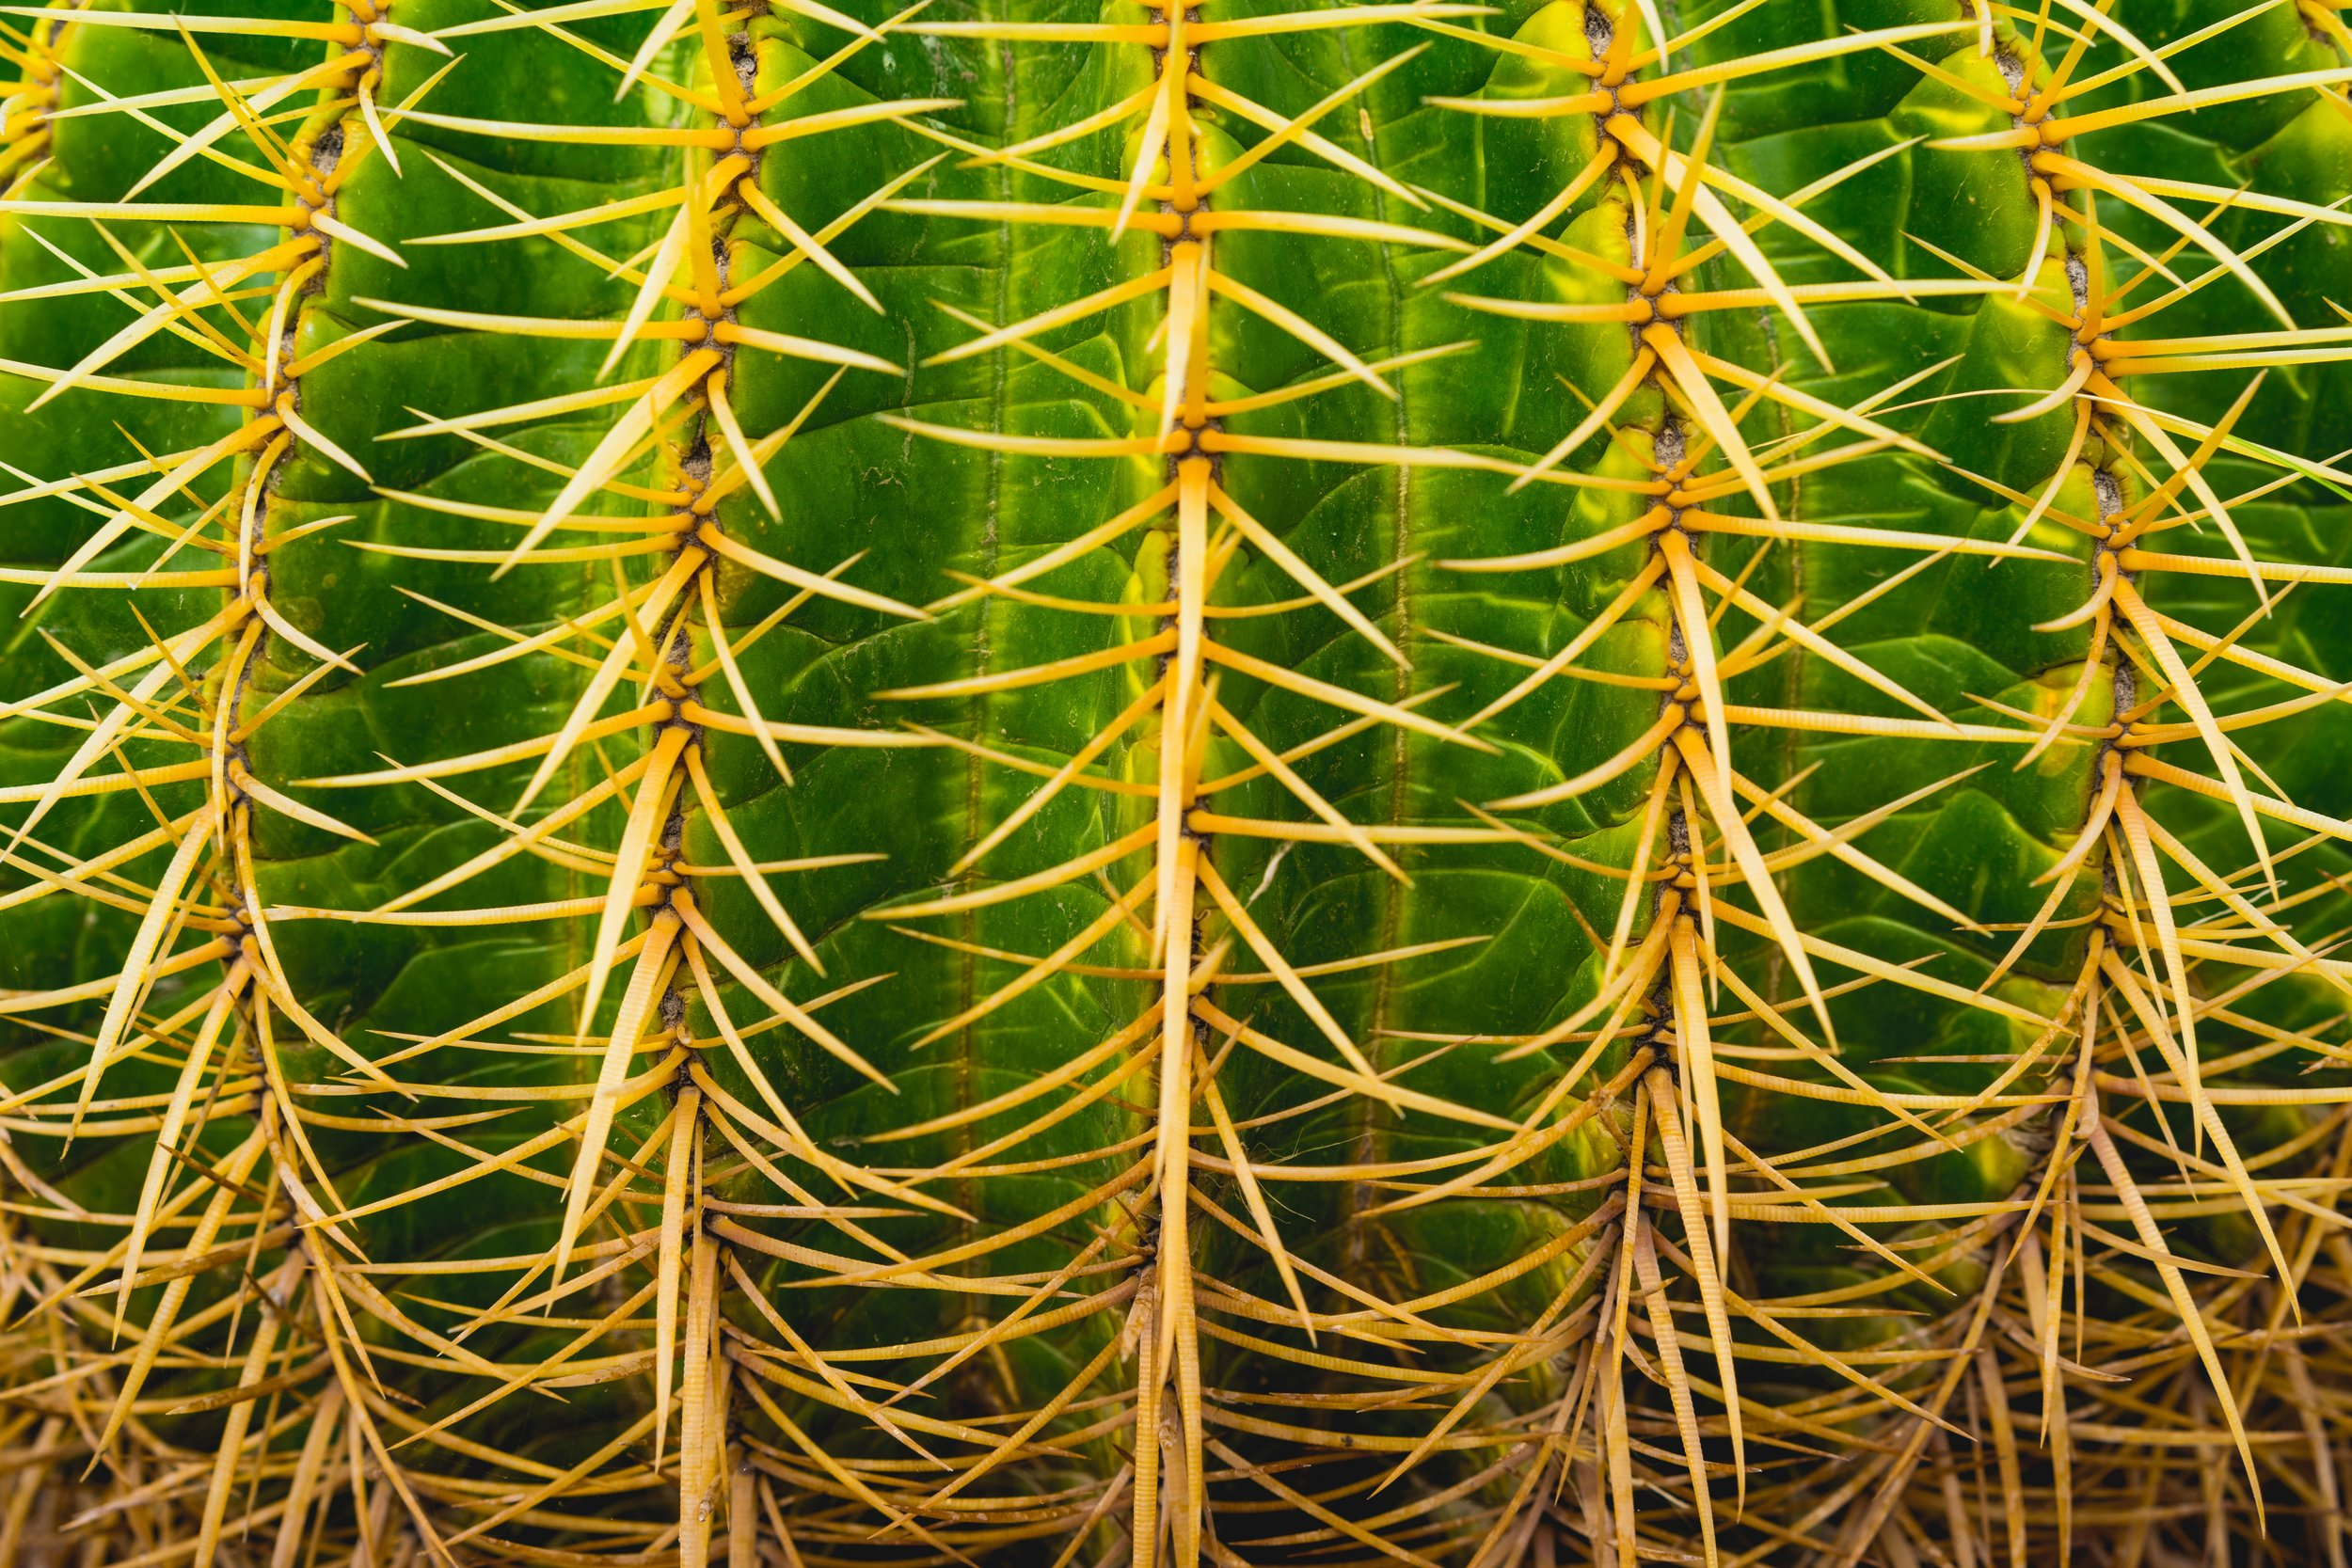 Photo by  Dan Gold  on  Unsplash    [Image Description: A macro shot of cactus needles in vertical rows on top of vivid green ridges]